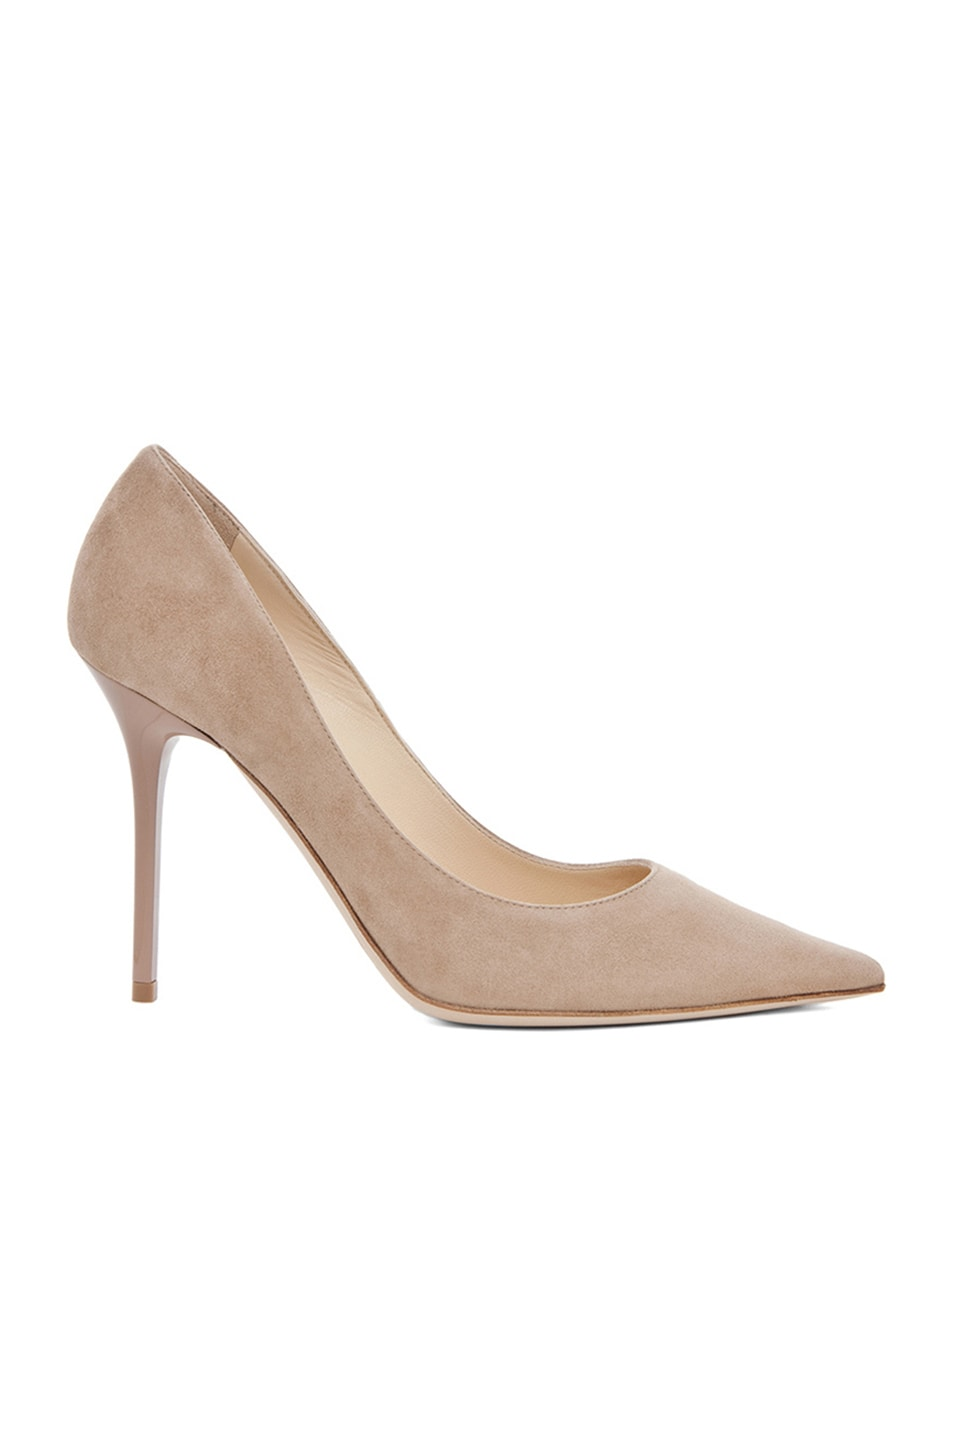 30d92957e46 Image 1 of Jimmy Choo Abel 100 Suede Pumps in Nude